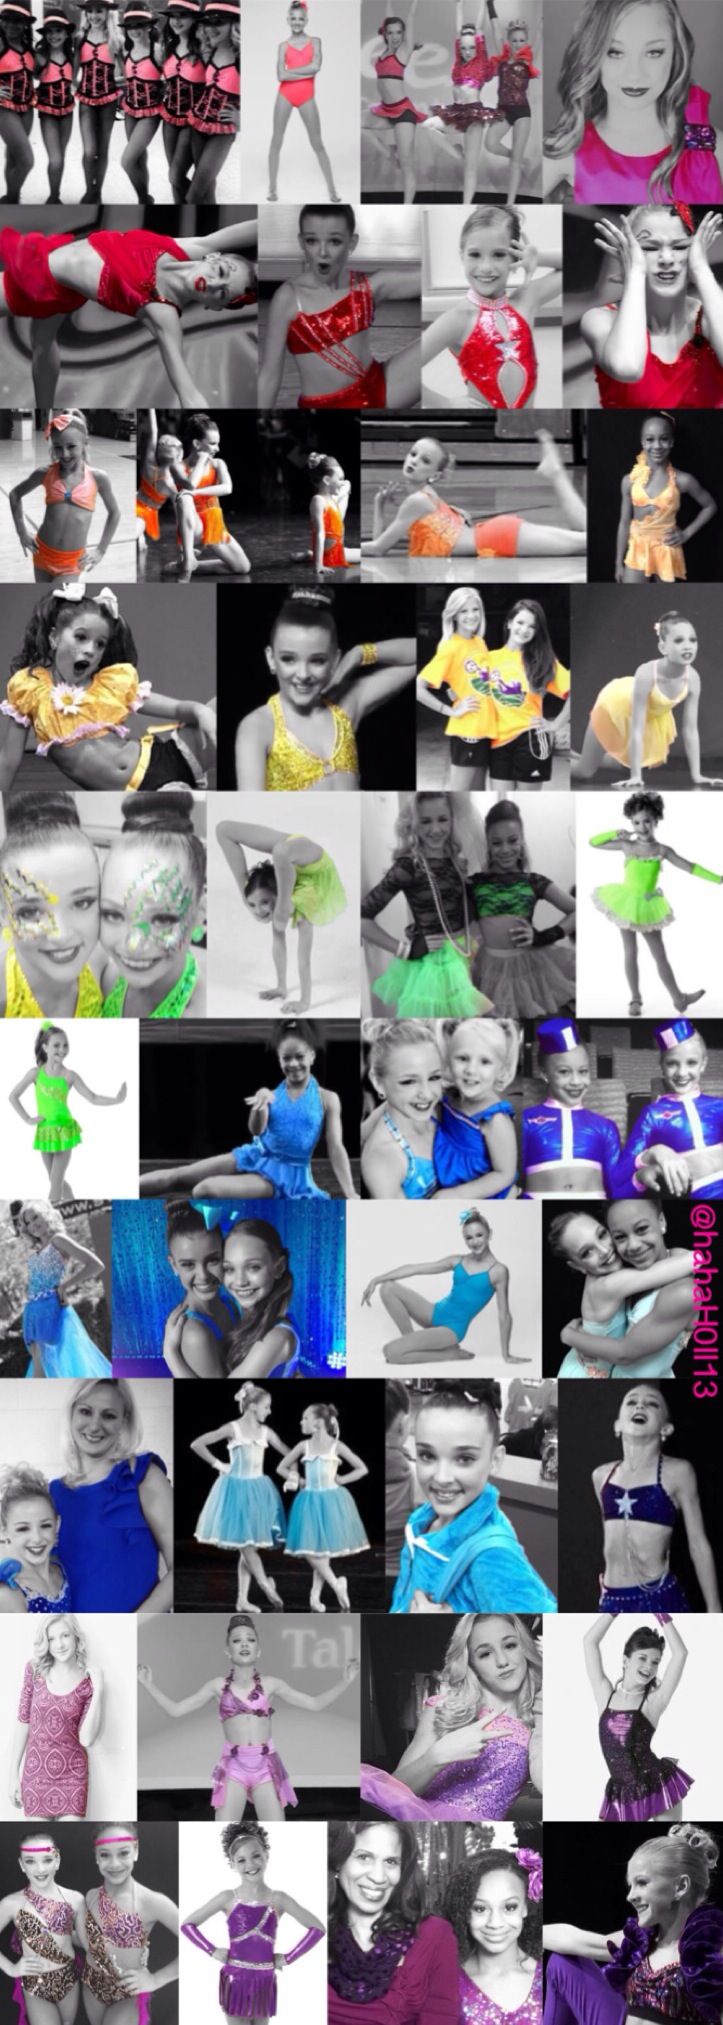 This is a really special edit I made for the Dance Moms cast and fandom. This is a Dance Moms color collage including: Brooke Hyland, Chloe Lukasiak, Kalani Hilliker, Kendall Vertes, Mackenzie Ziegler, Maddie Ziegler, Nia Frazier, and Paige Hyland. This edit was made by @hahaH0ll13 Please give credit. I also take requests for any DM edits!!